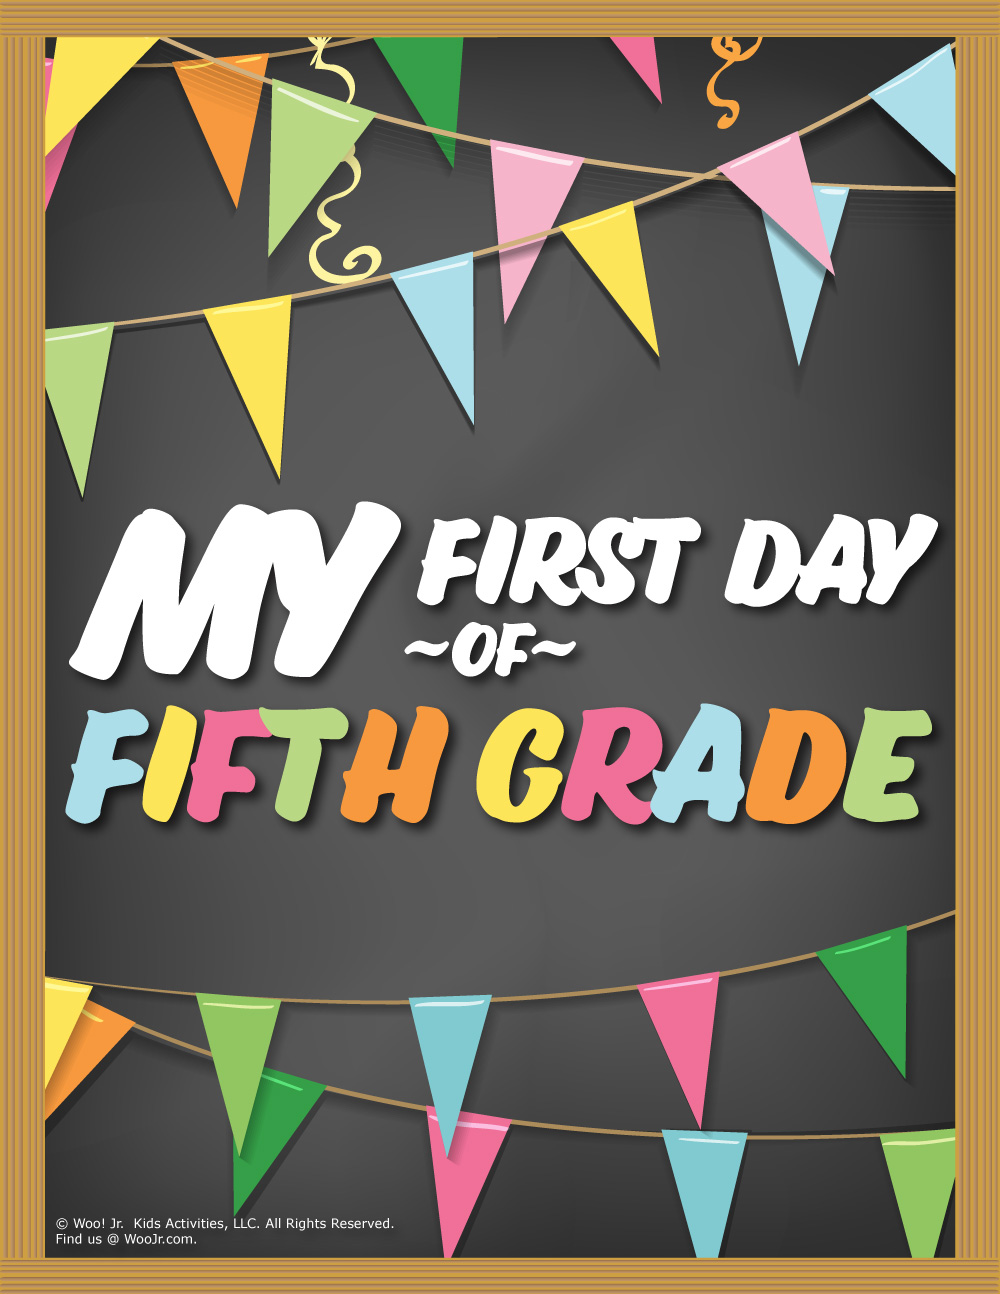 image regarding First Day of 5th Grade Printable named 1st Working day of 5th Quality Indicator - Chalkboard Woo! Jr. Little ones